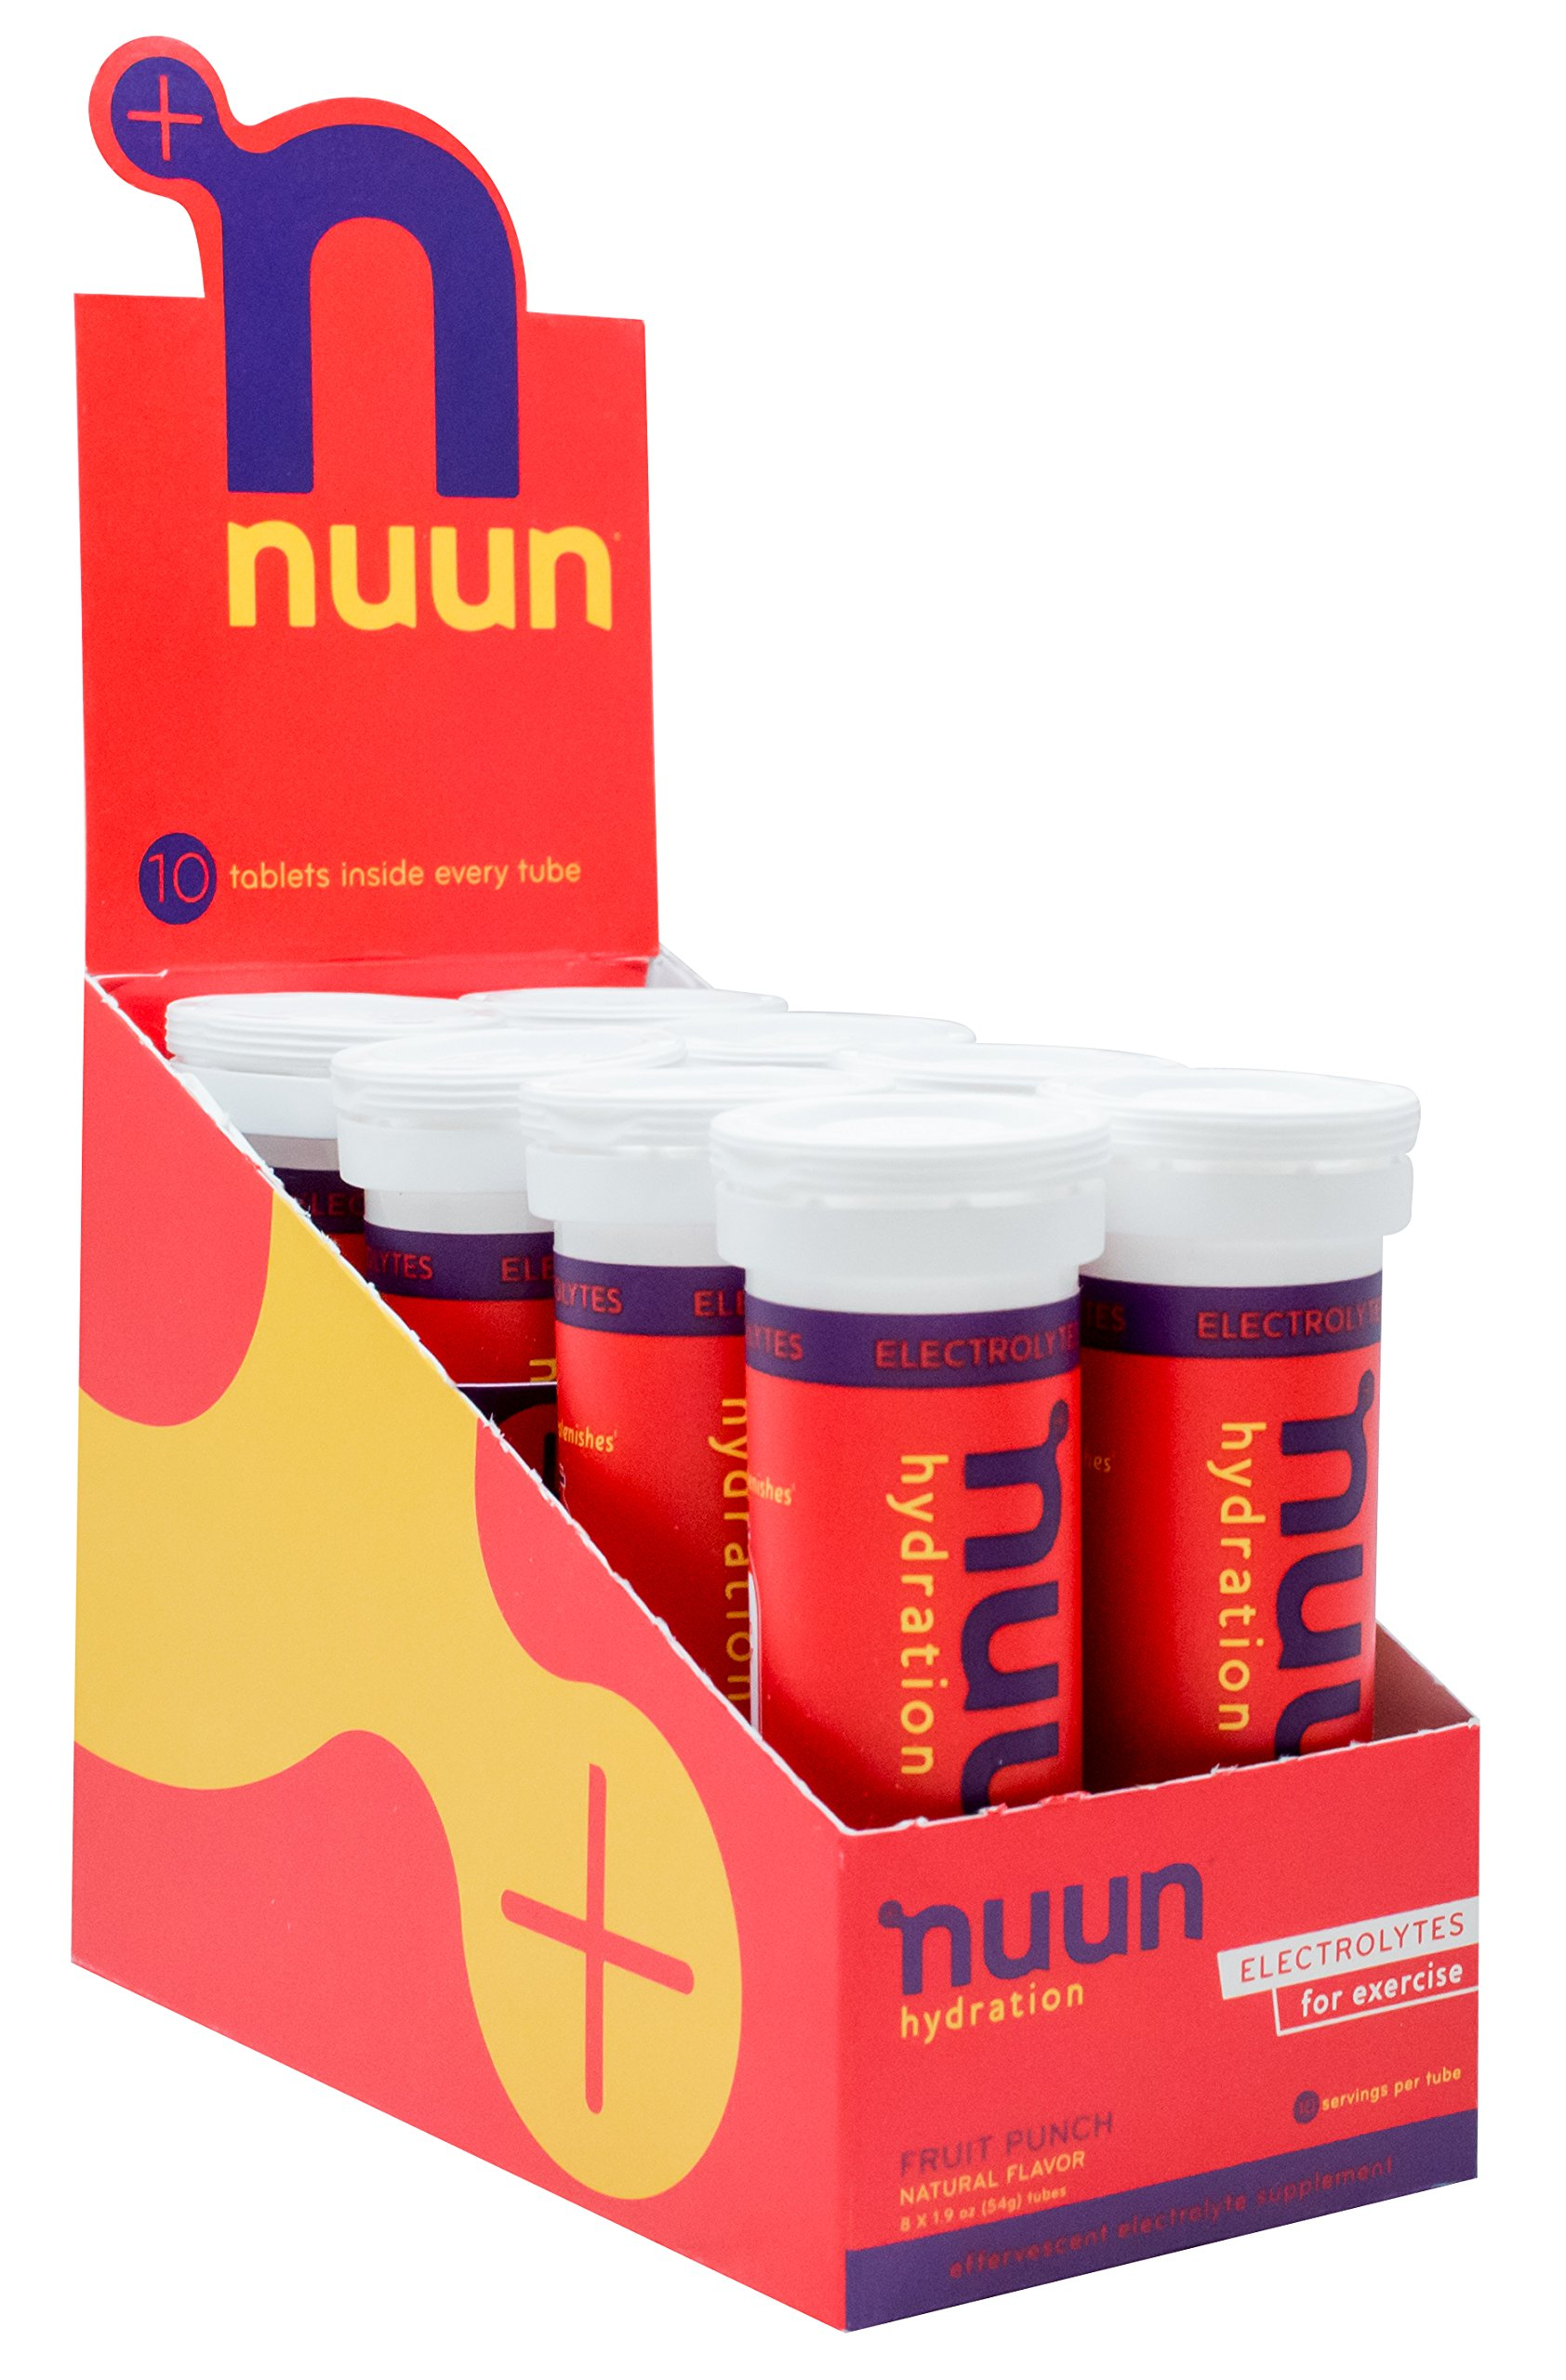 Nuun Electrolyte and Hydration Replacement Tablets Nuun Electrolyte and Hydration Replacement Tablets new picture